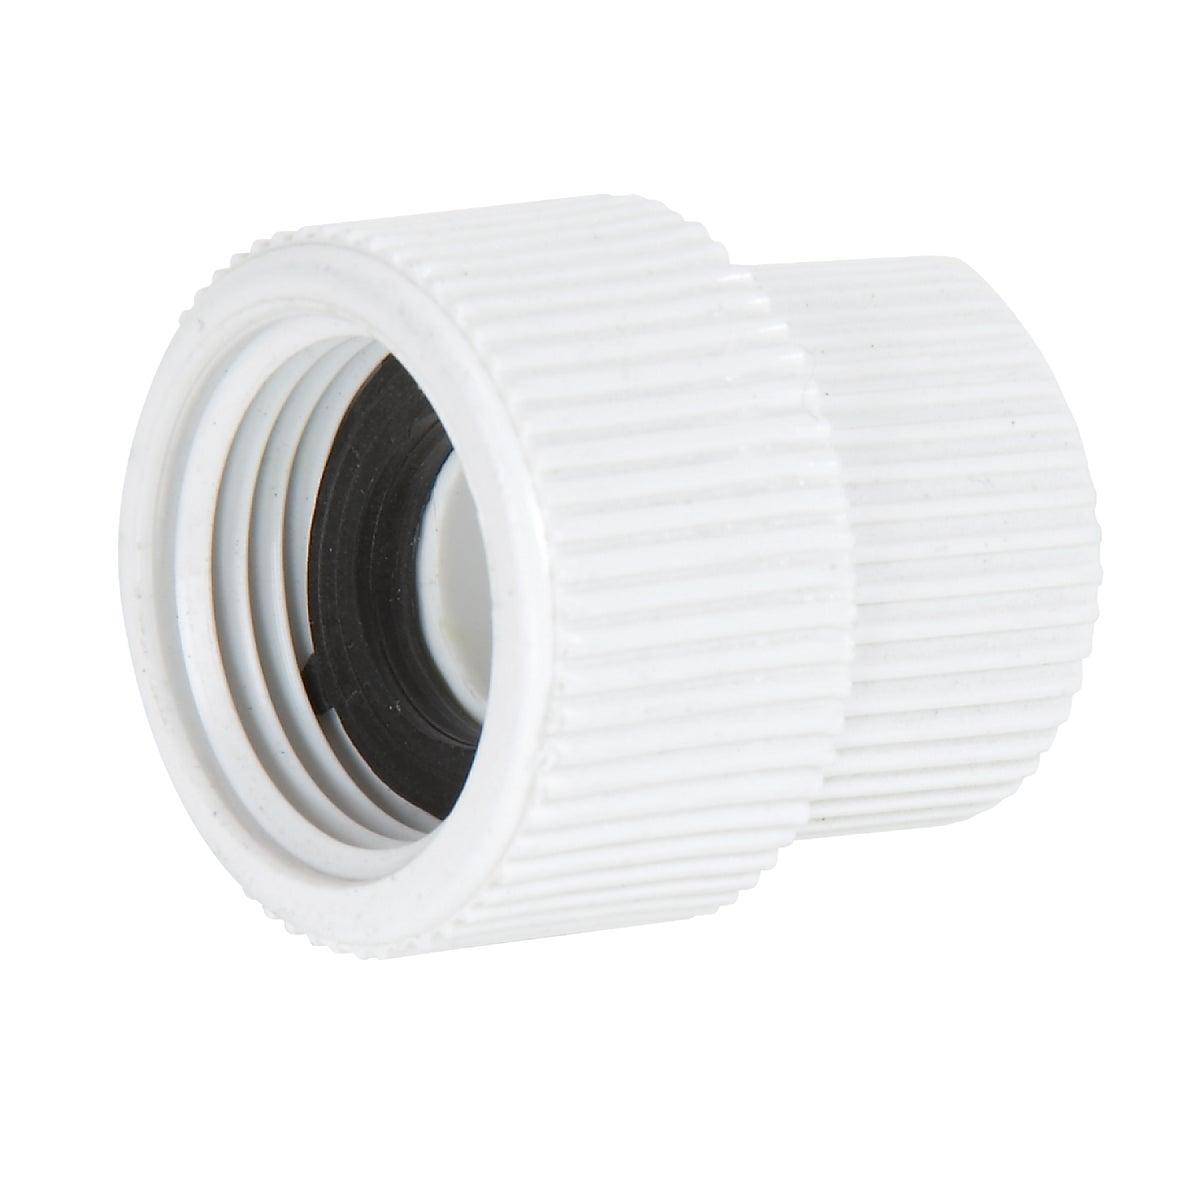 1/2FPT3/4FHT PVC FITTING - 53366 by Orbit